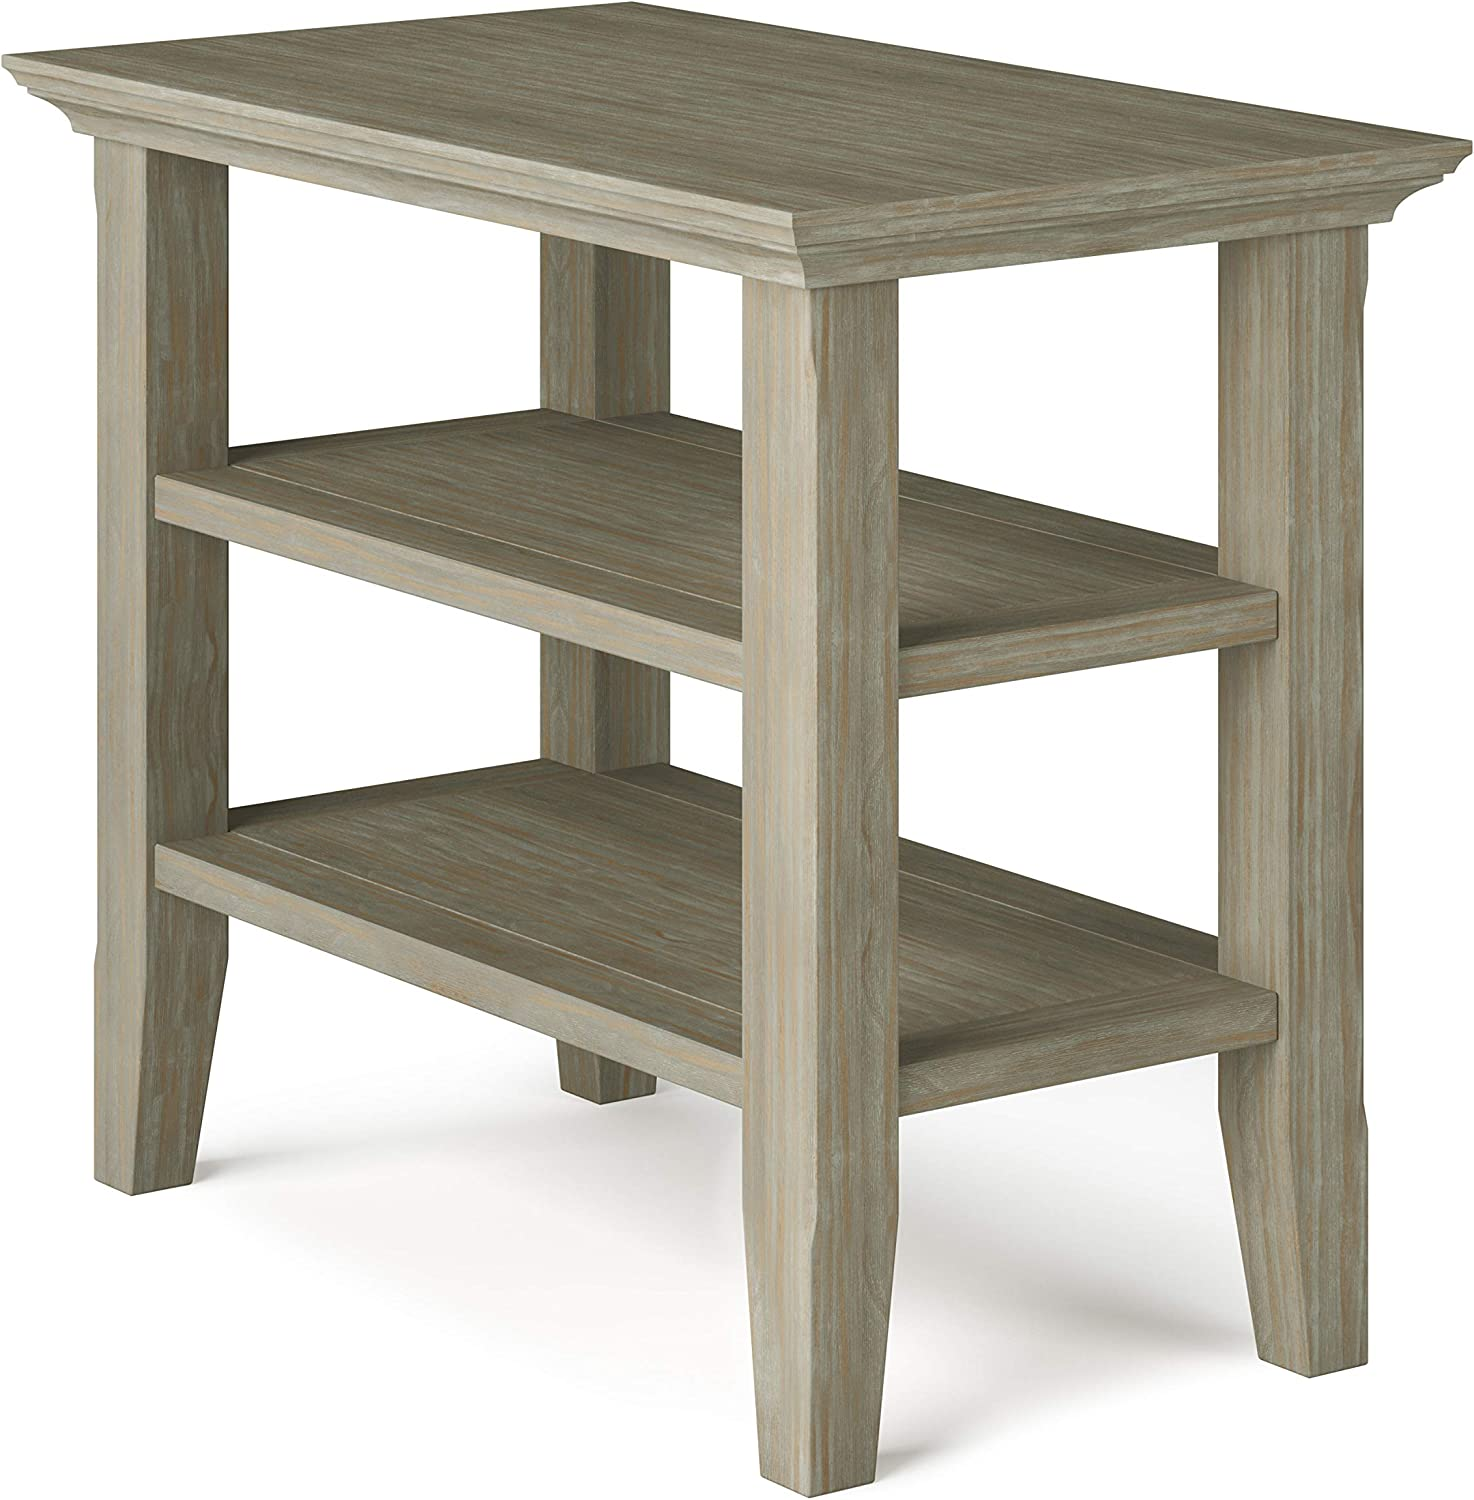 Simpli Home Acadian SOLID WOOD 14 inch Wide Rectangle Rustic Narrow Side Table in Distressed Grey